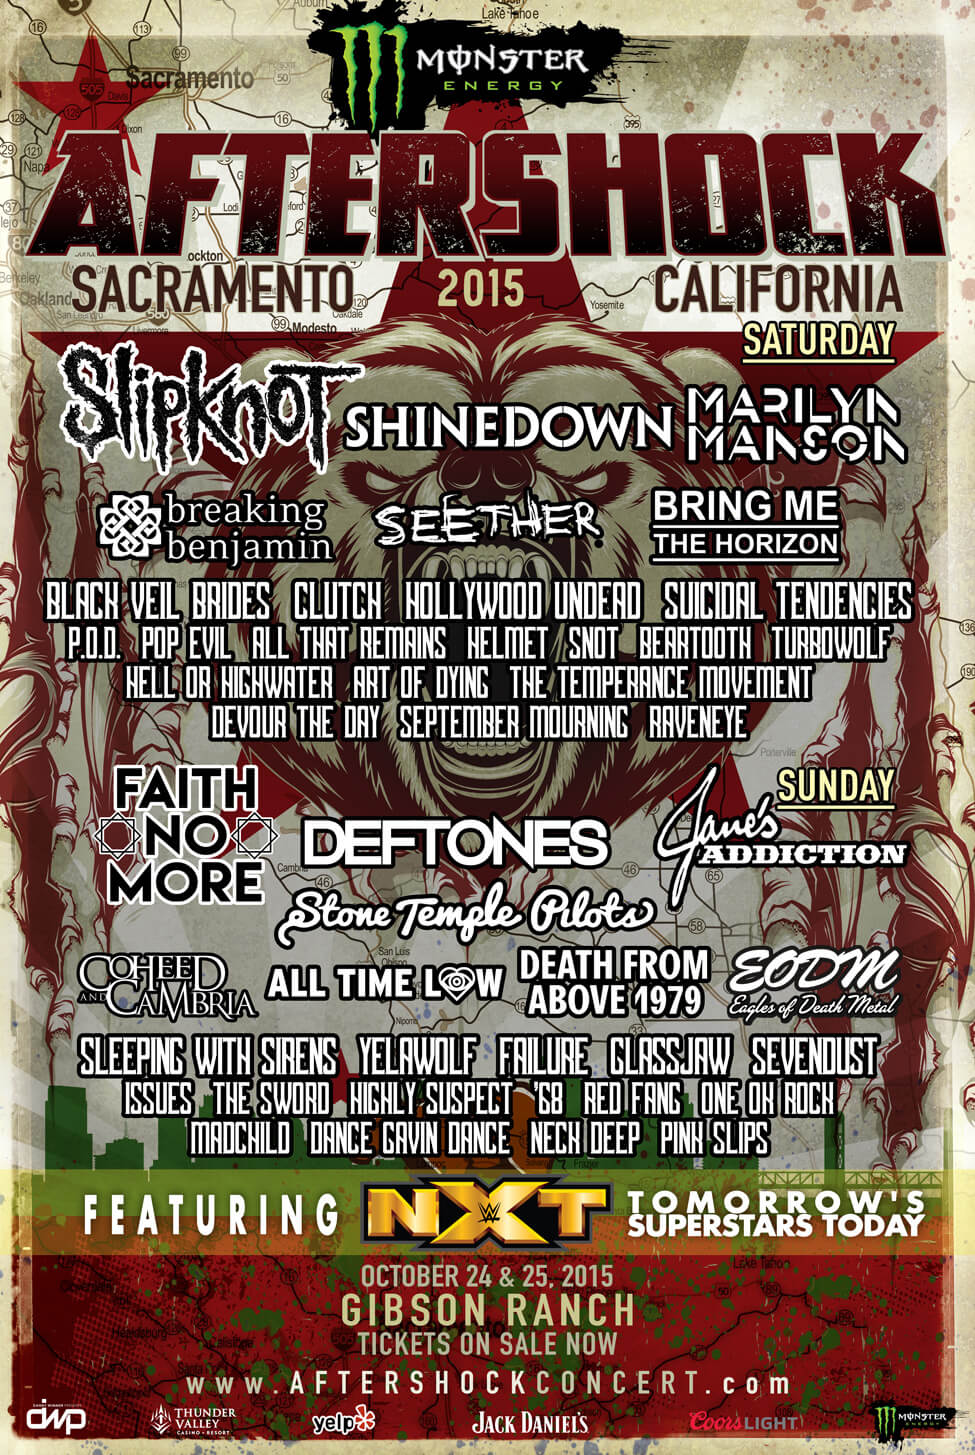 AFTERSHOCK.2015.admat .FINAL .8.31 - Monster Energy Aftershock Festival scheduled for Oct 24-25th Sacramento, CA